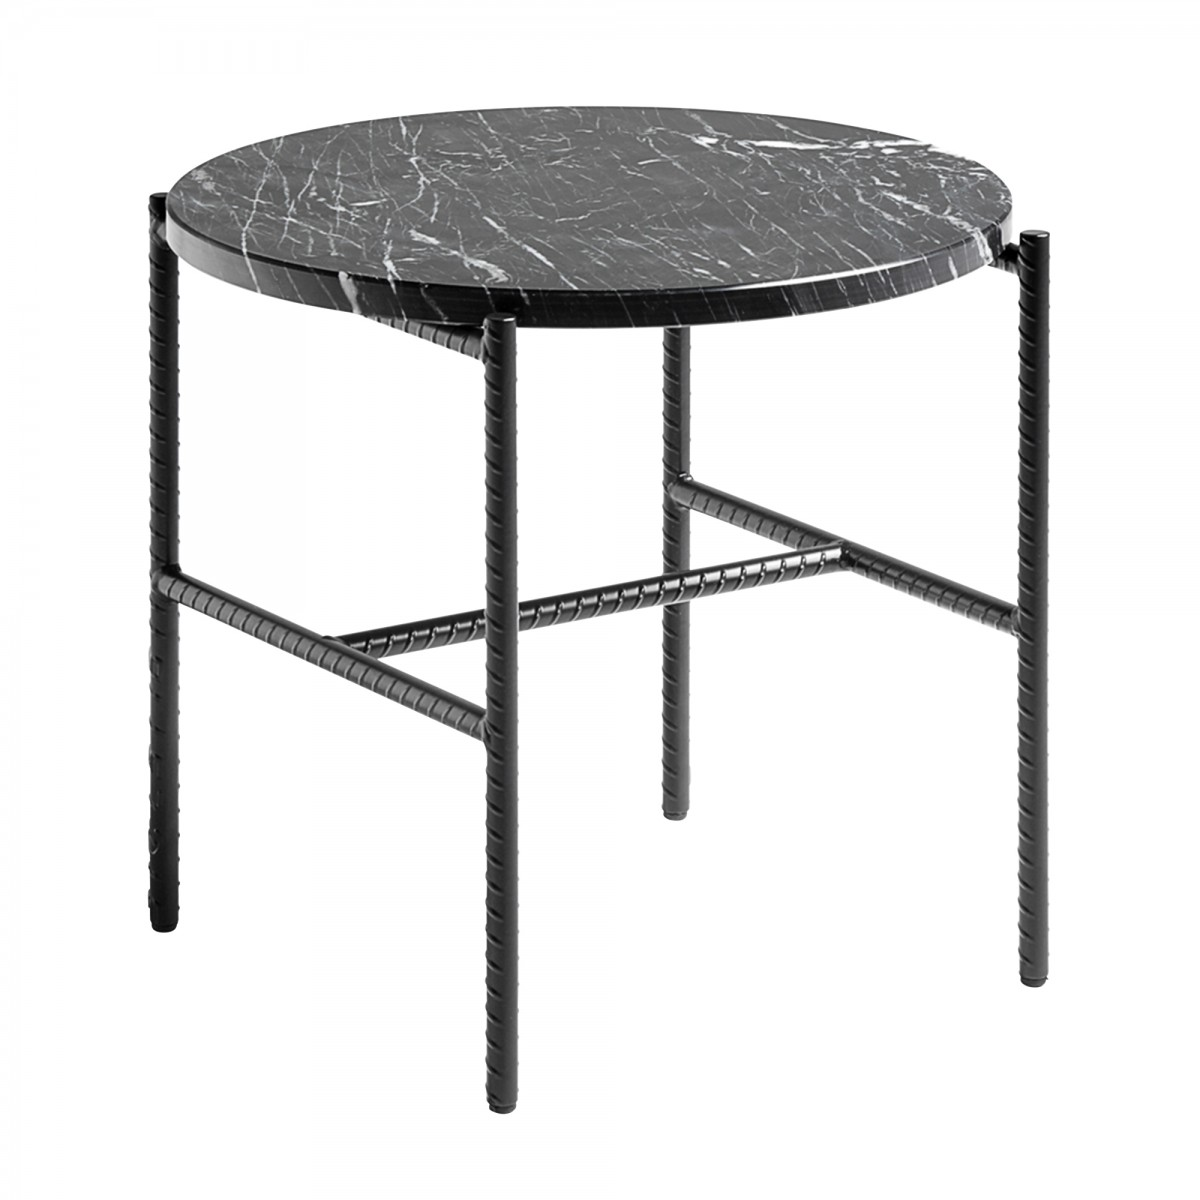 Table basse ronde noire gallery of table basse ronde noir - Table basse ronde noire ...